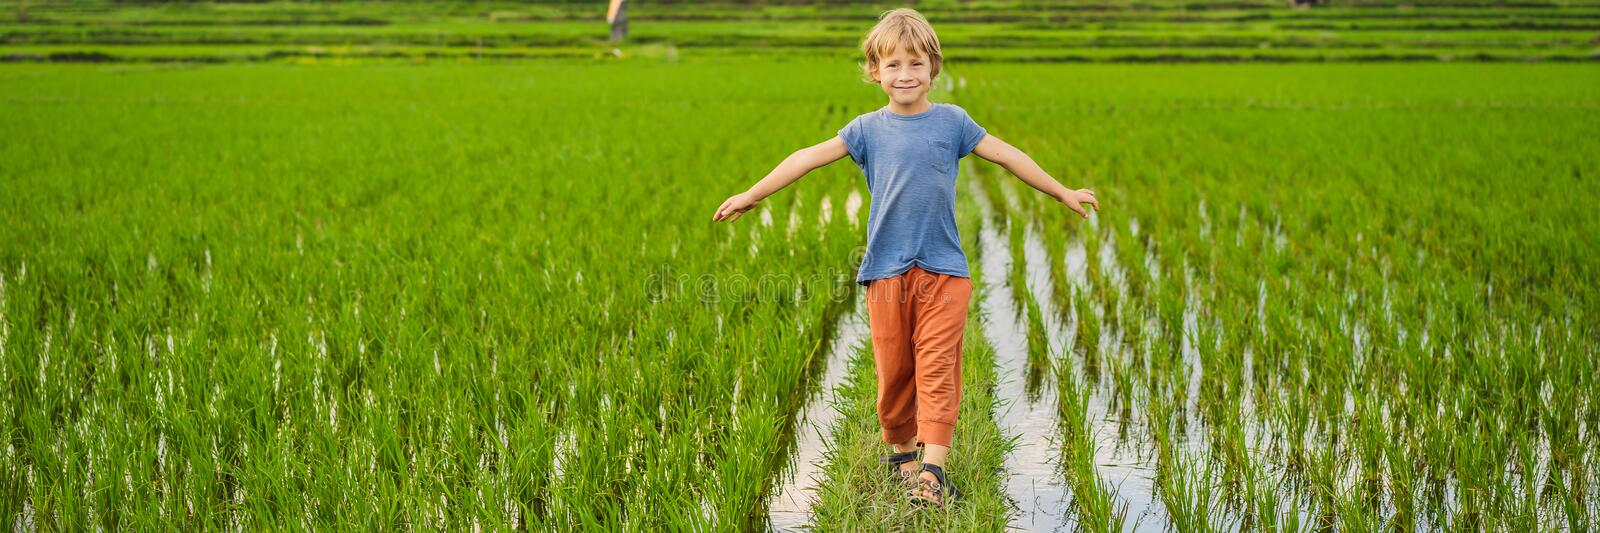 Tourist boy walks in a rice field. Traveling with children concept. Kids friendly place BANNER, LONG FORMAT royalty free stock photo